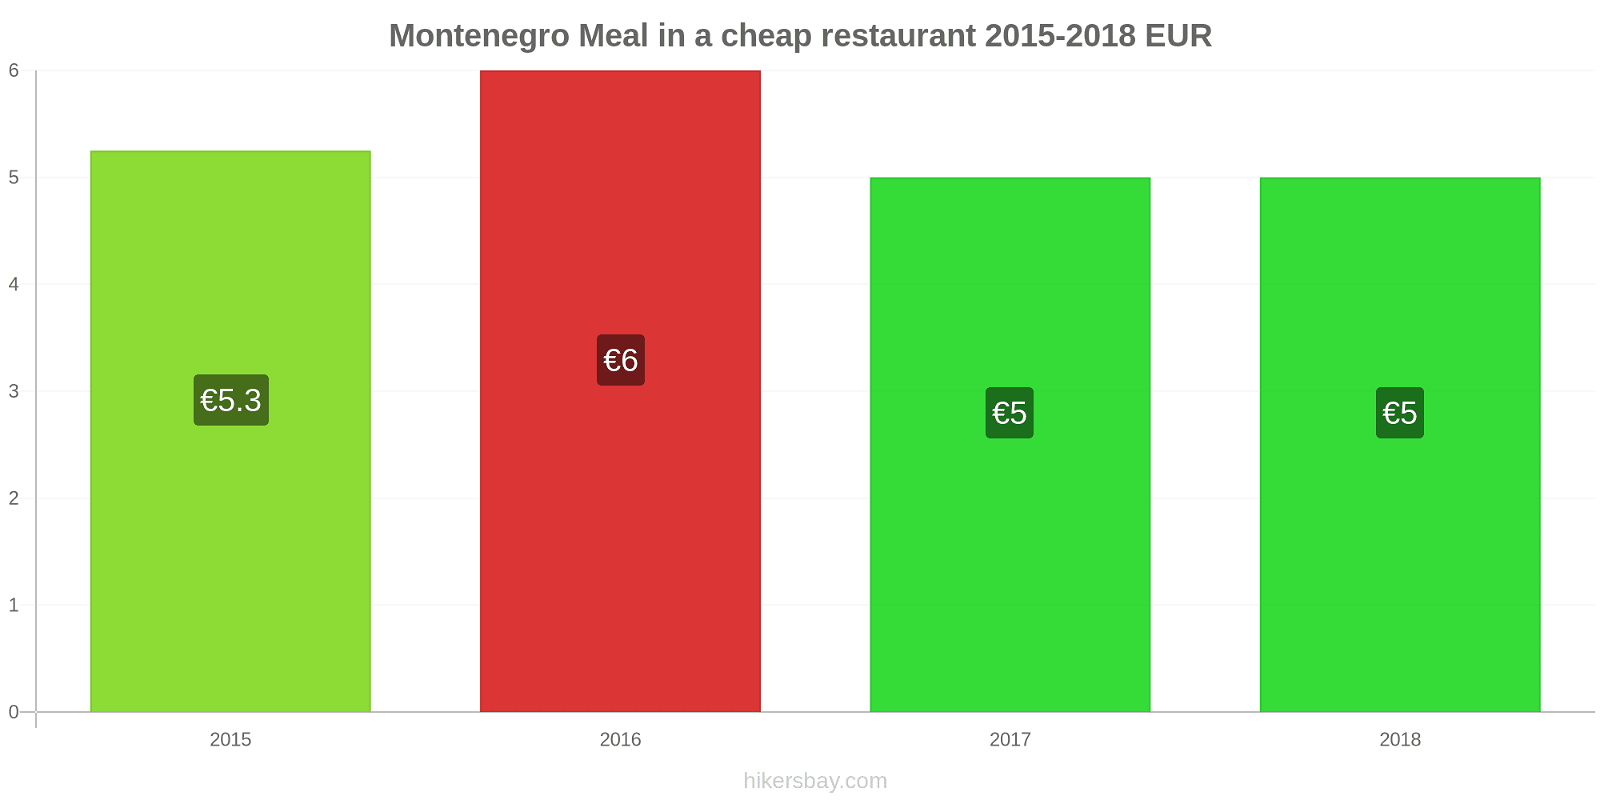 Montenegro price changes Meal in a cheap restaurant hikersbay.com